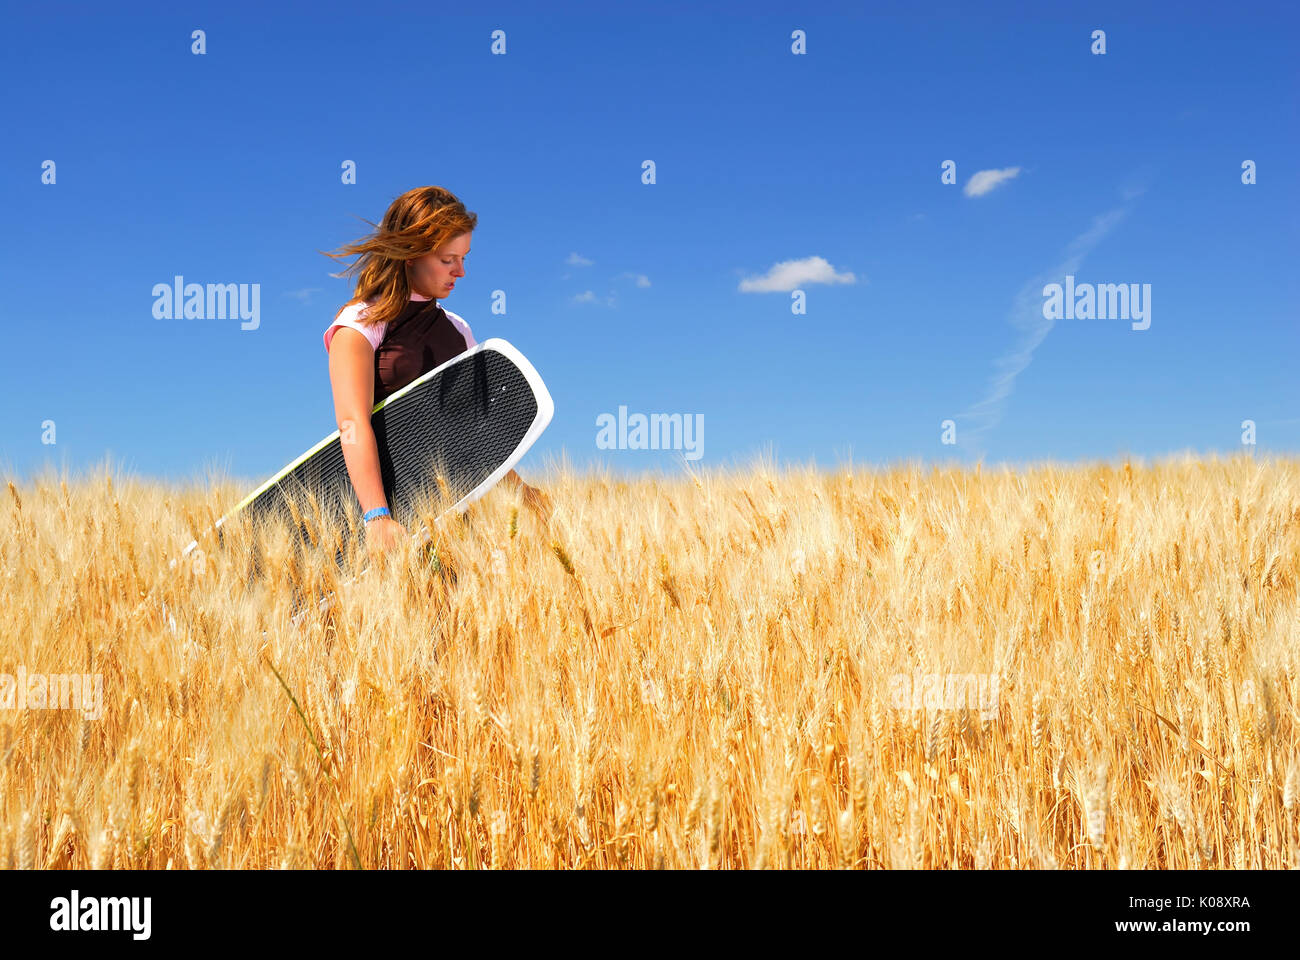 Pretty Girl in Durum Wheat Field, holding wakeboard. - Stock Image